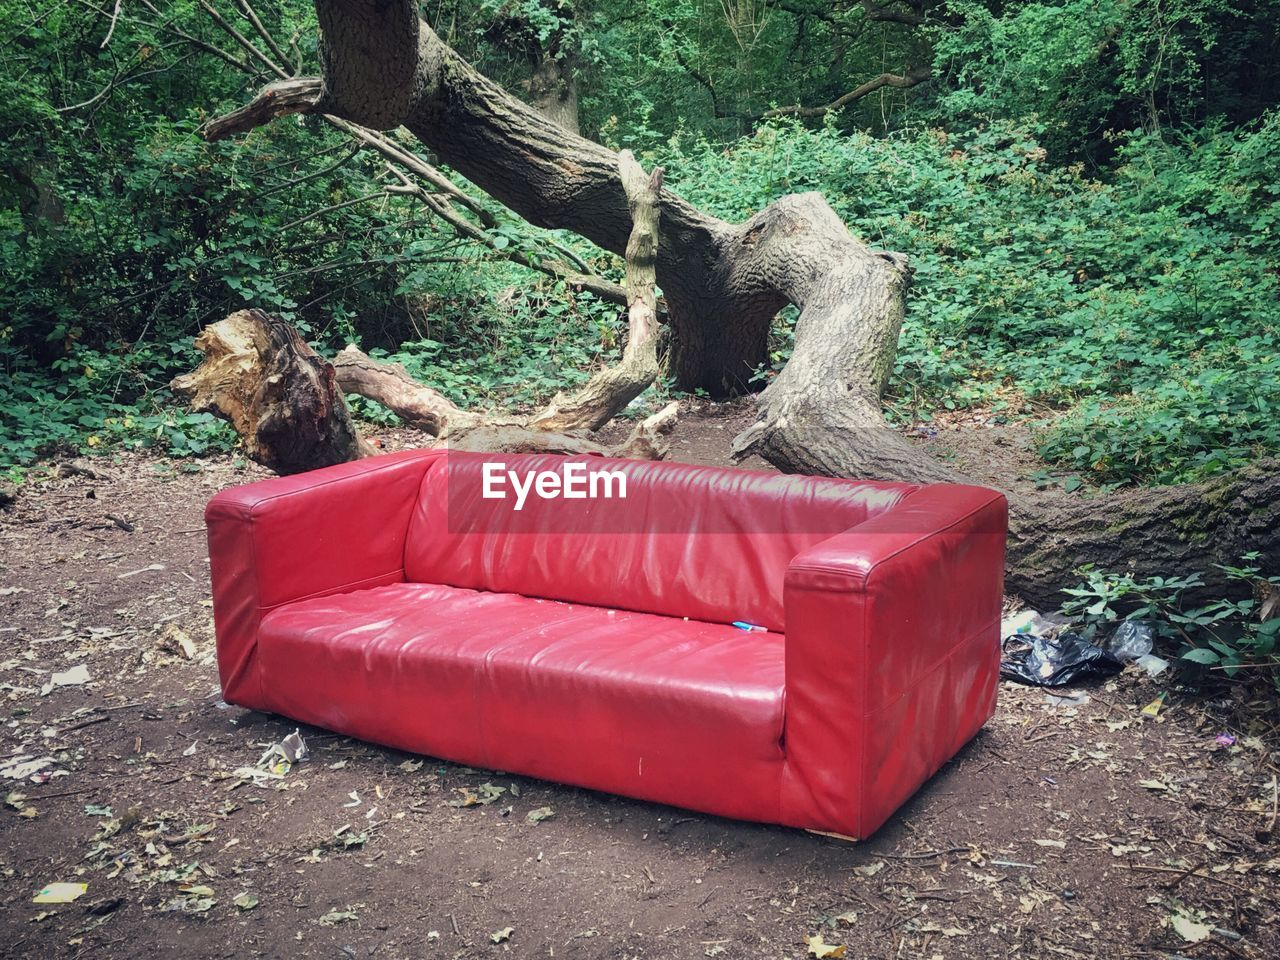 tree, one animal, animal themes, day, mammal, no people, red, armchair, growth, outdoors, nature, plant, domestic animals